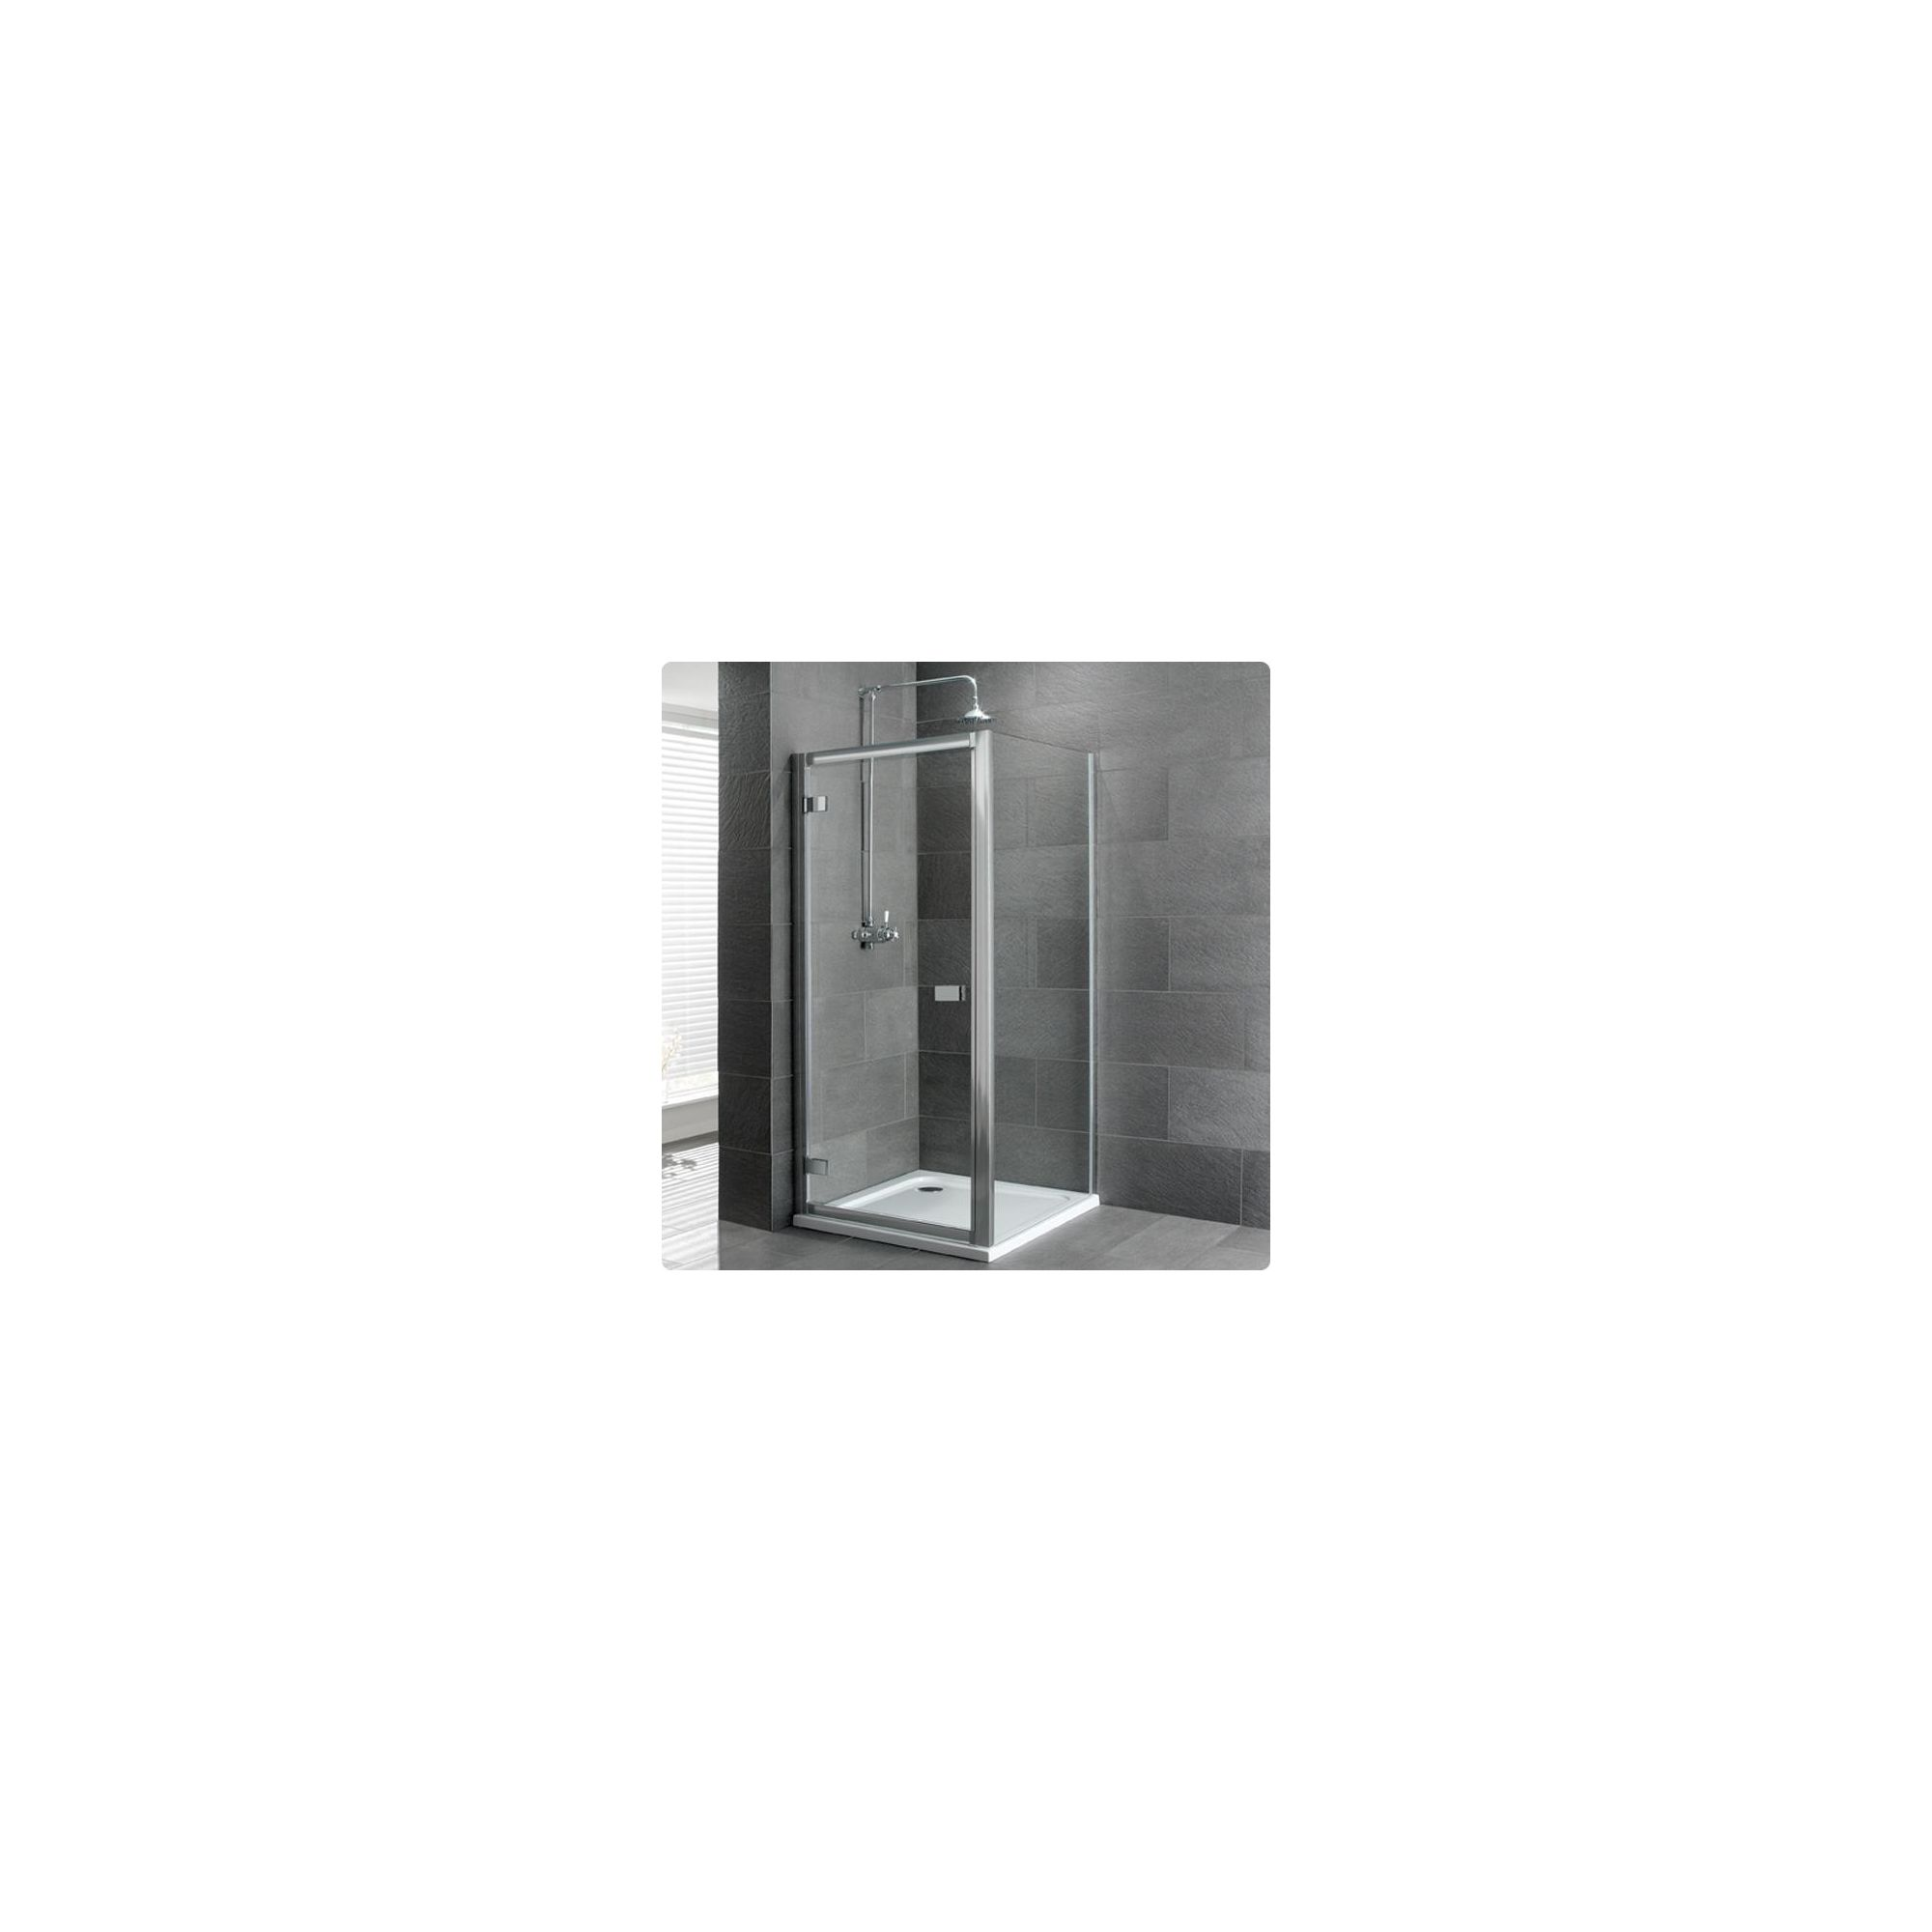 Duchy Select Silver Hinged Door Shower Enclosure, 800mm x 700mm, Standard Tray, 6mm Glass at Tesco Direct